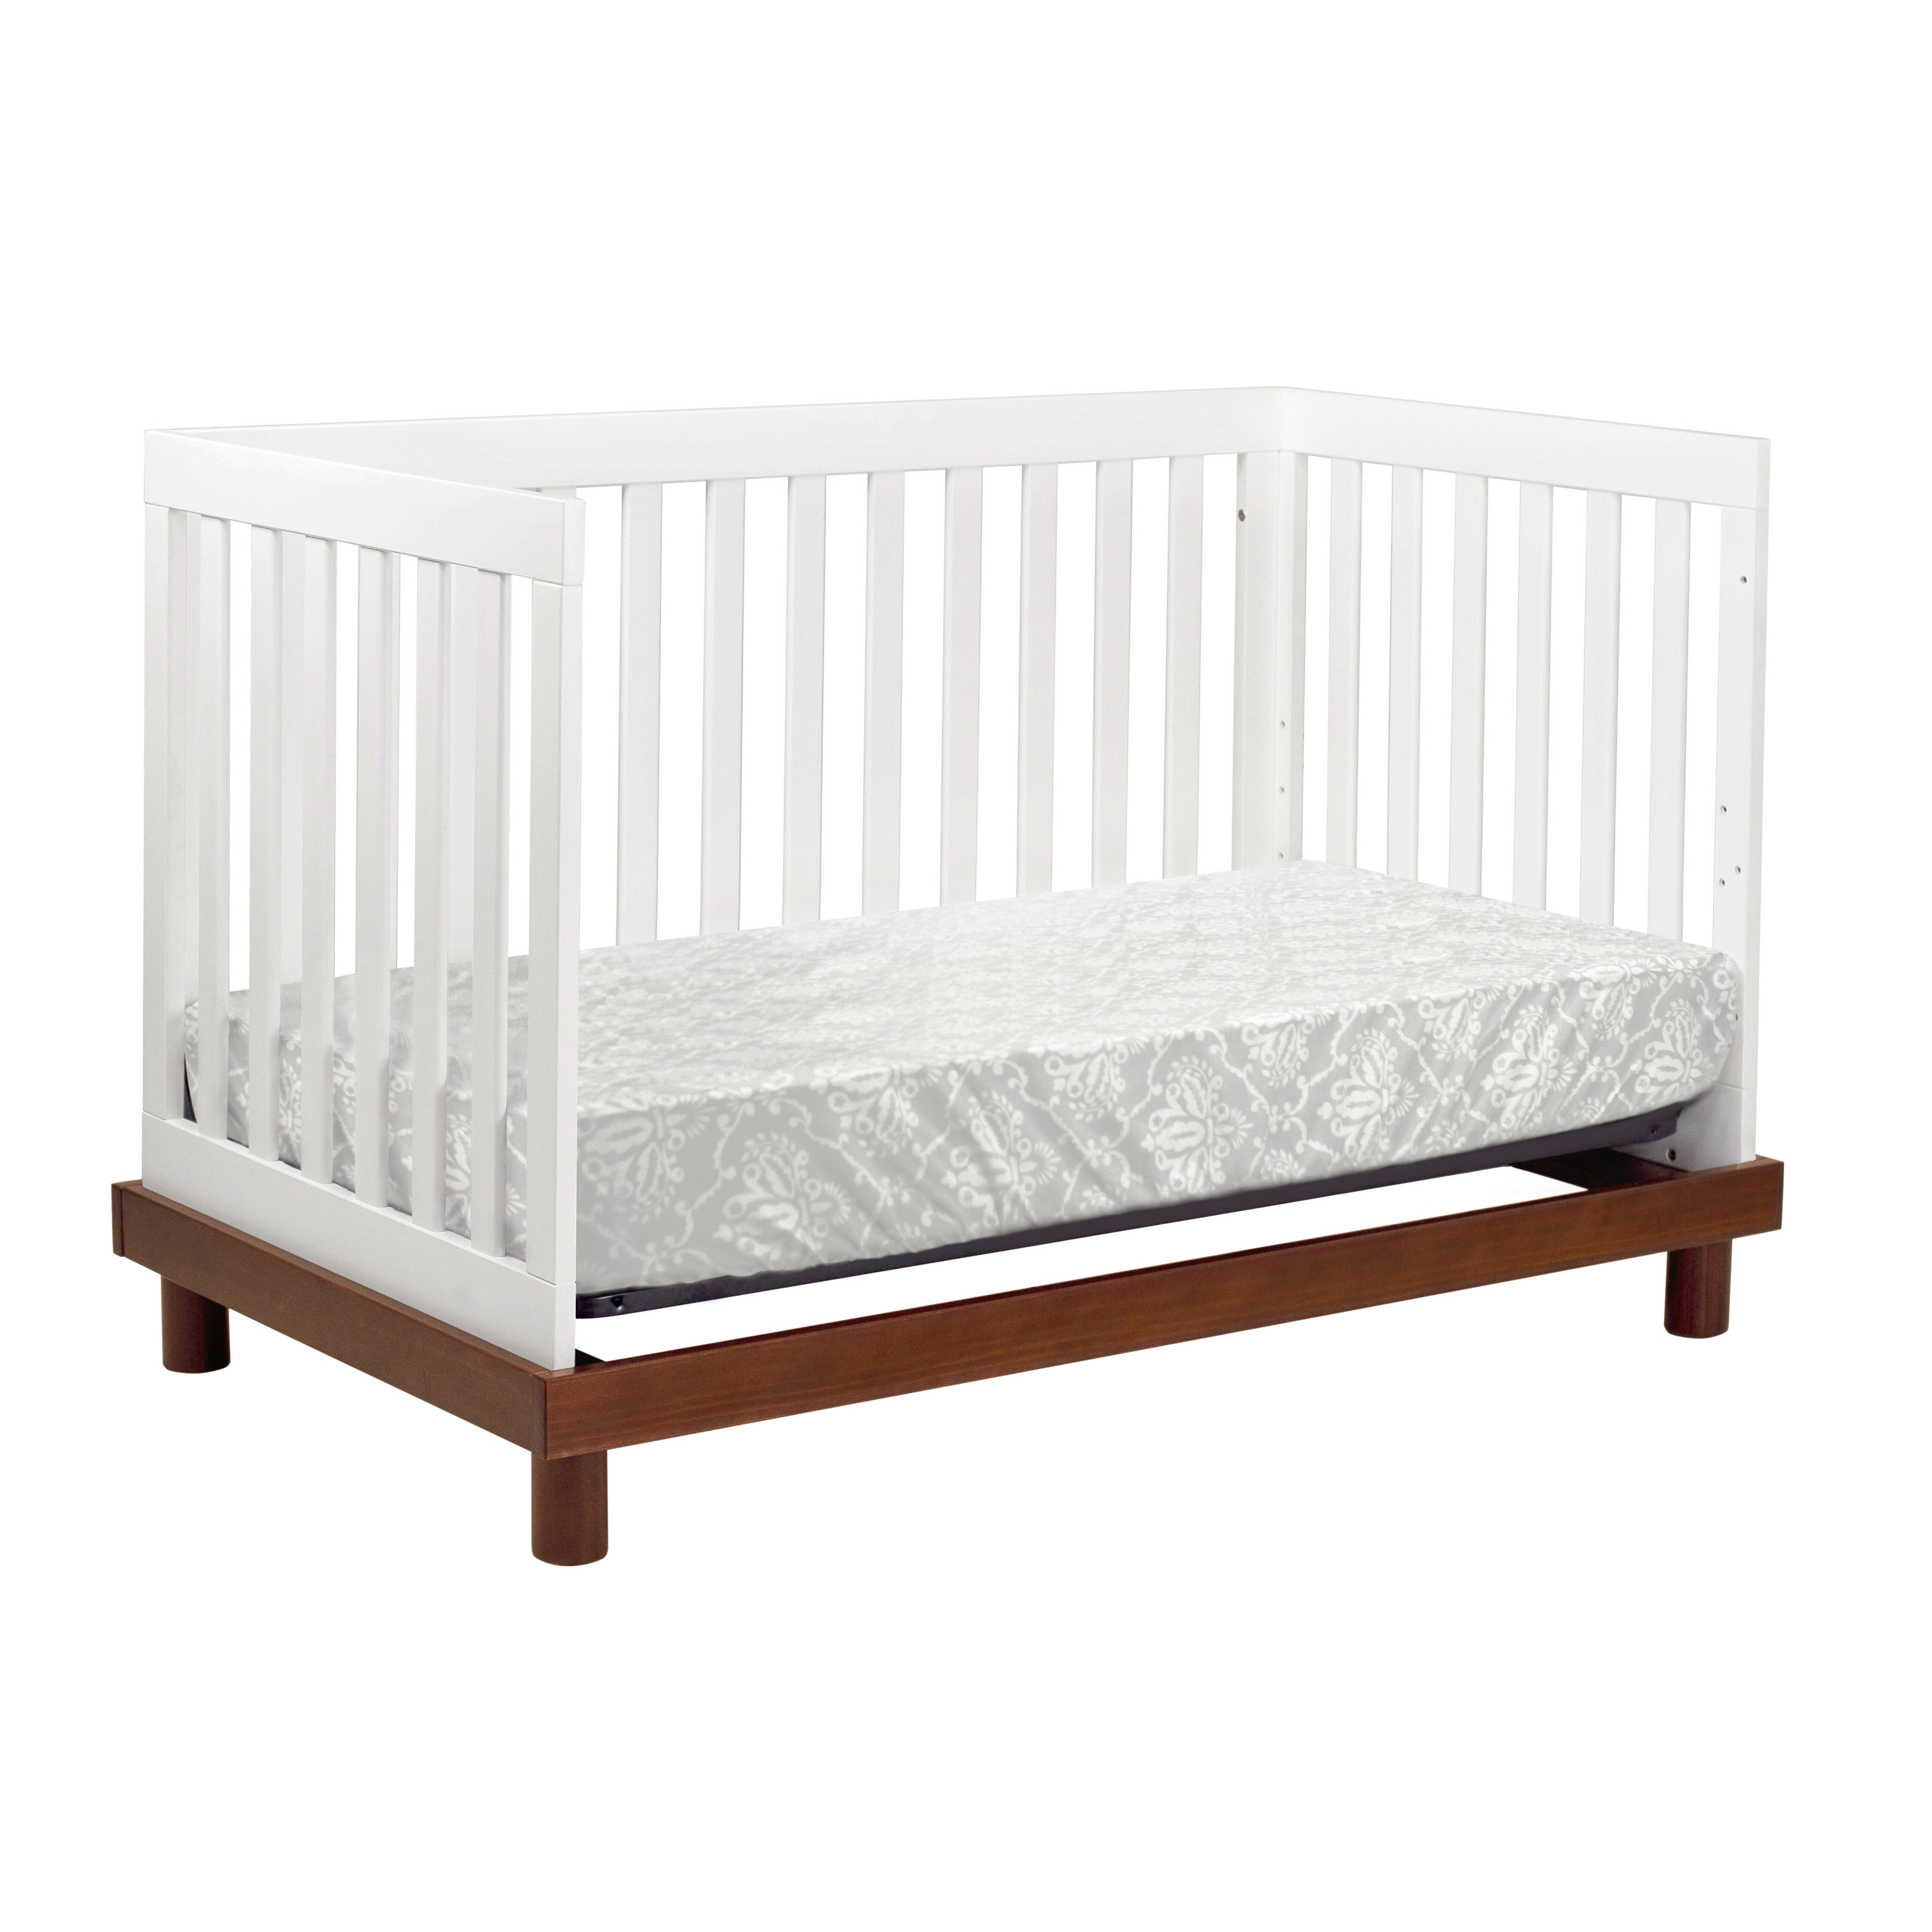 Crib spring frame for sale - Baby Mod Olivia 3 In 1 Convertible Crib